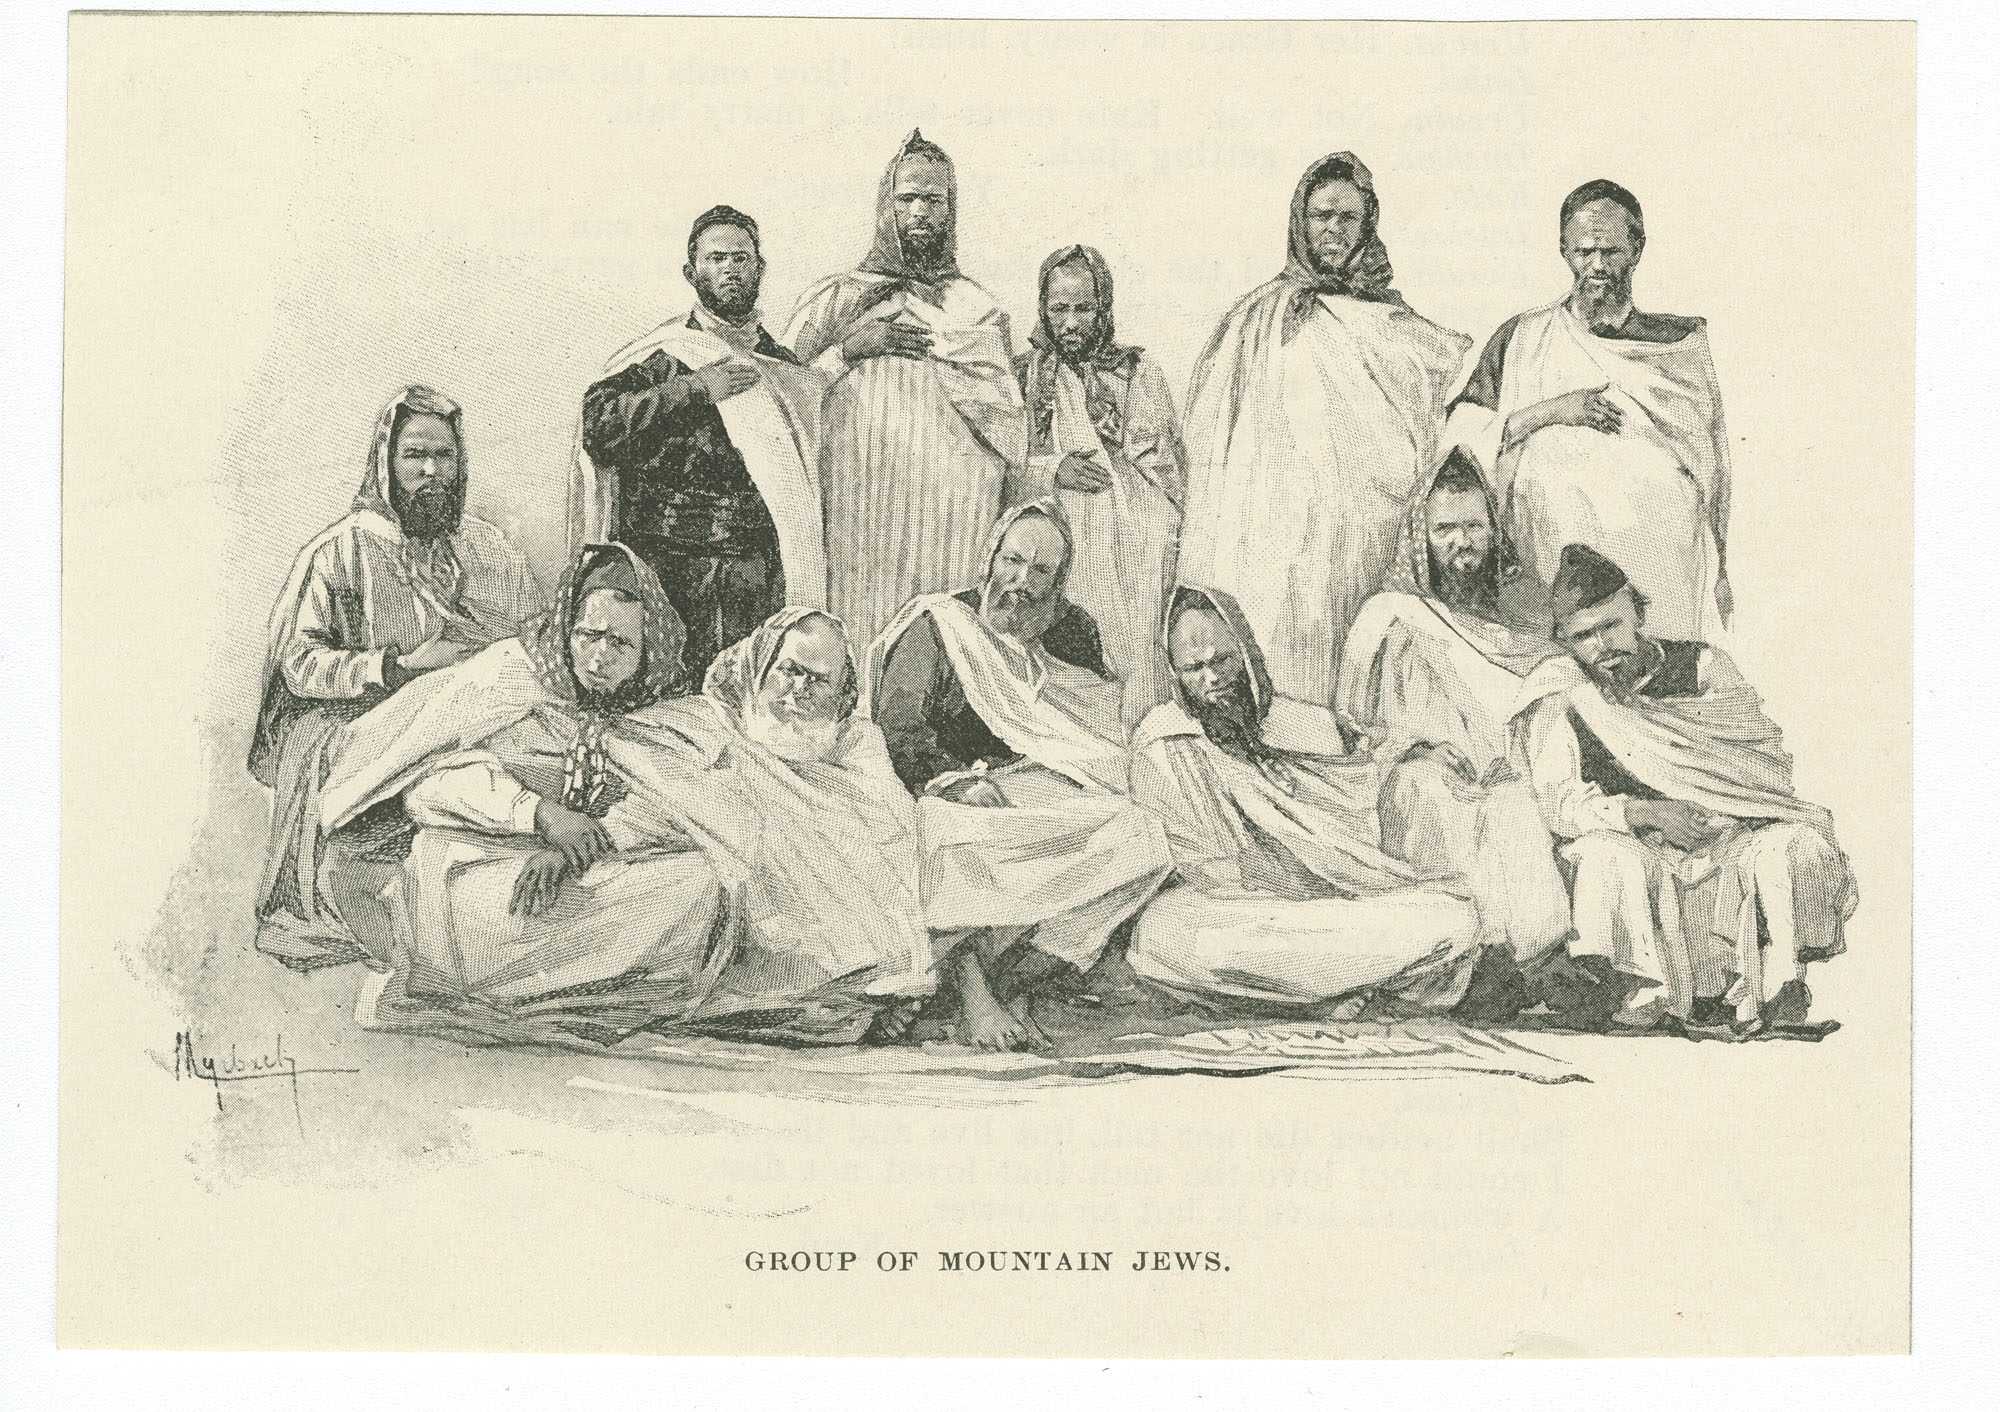 Group of mountain Jews